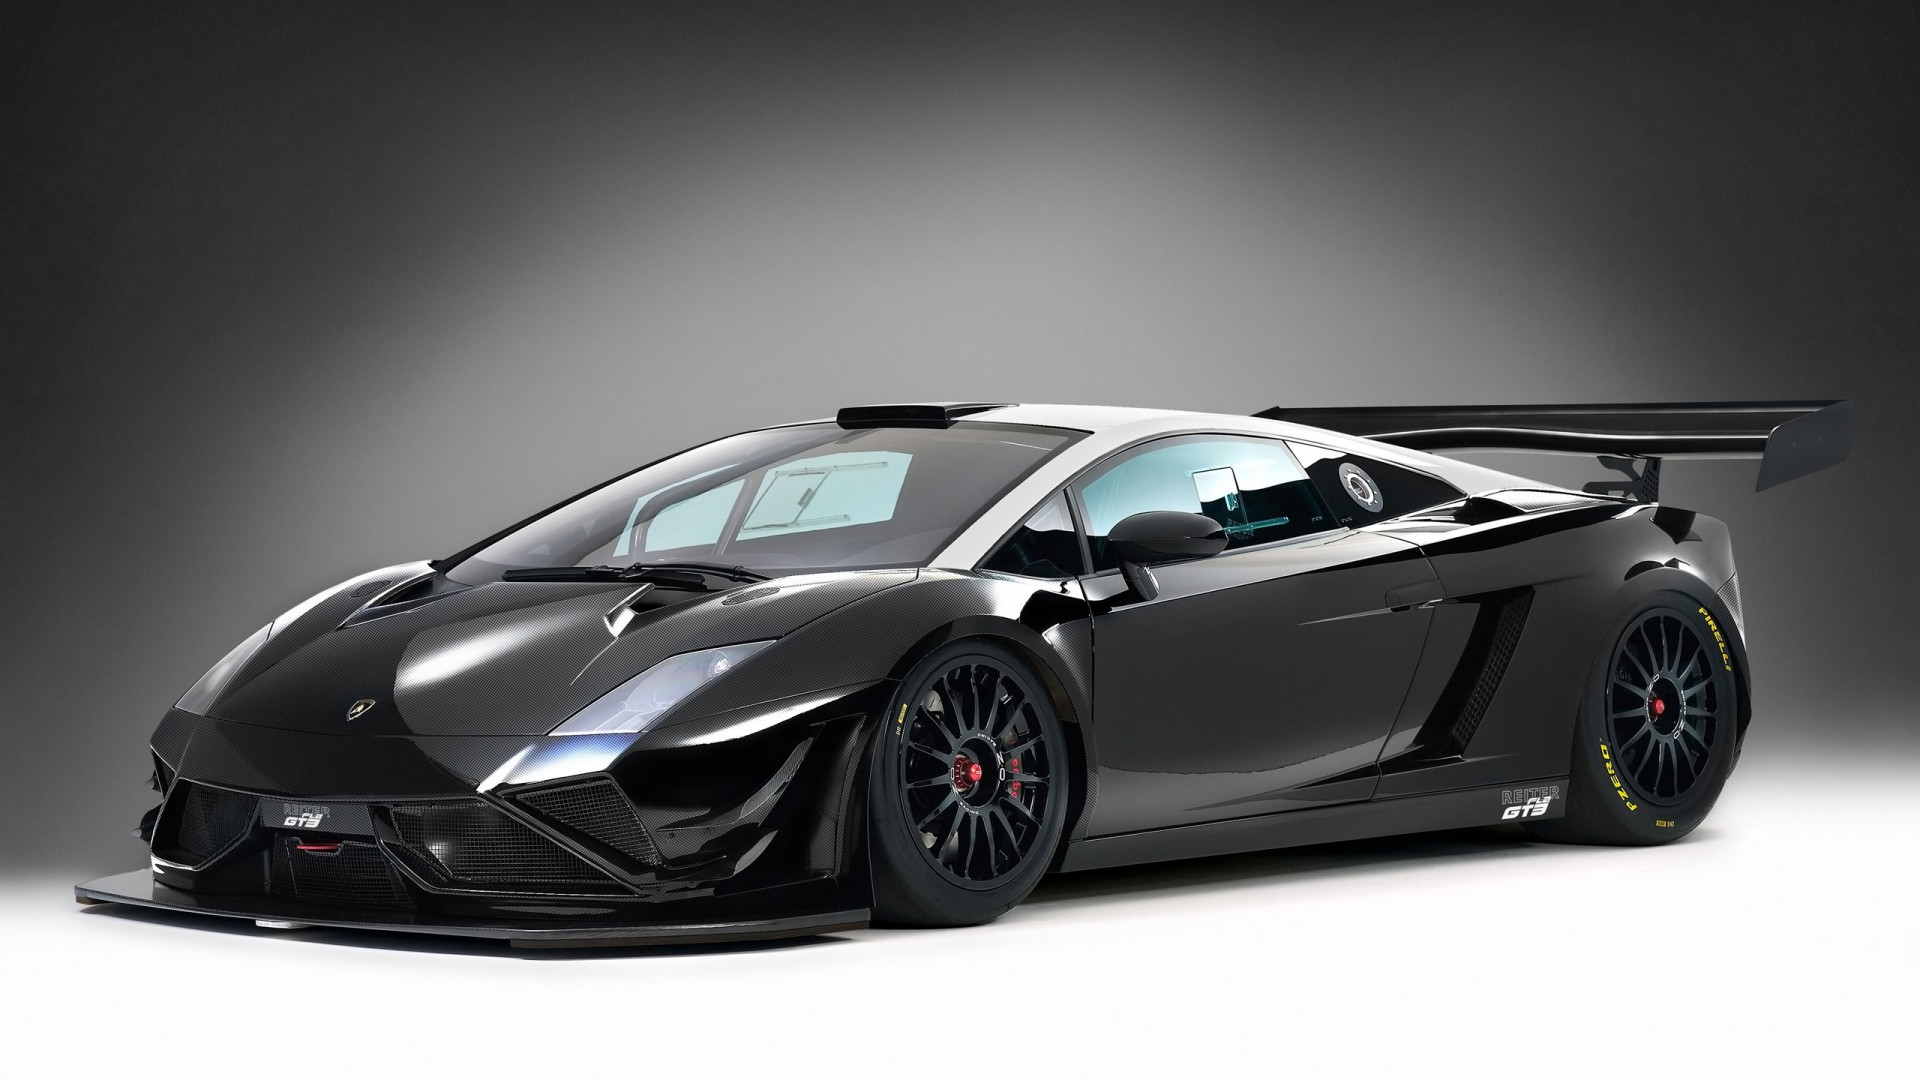 Lamborghini Gallardo GT3 FL2 By Reiter Engineering Wallpaper | HD Car